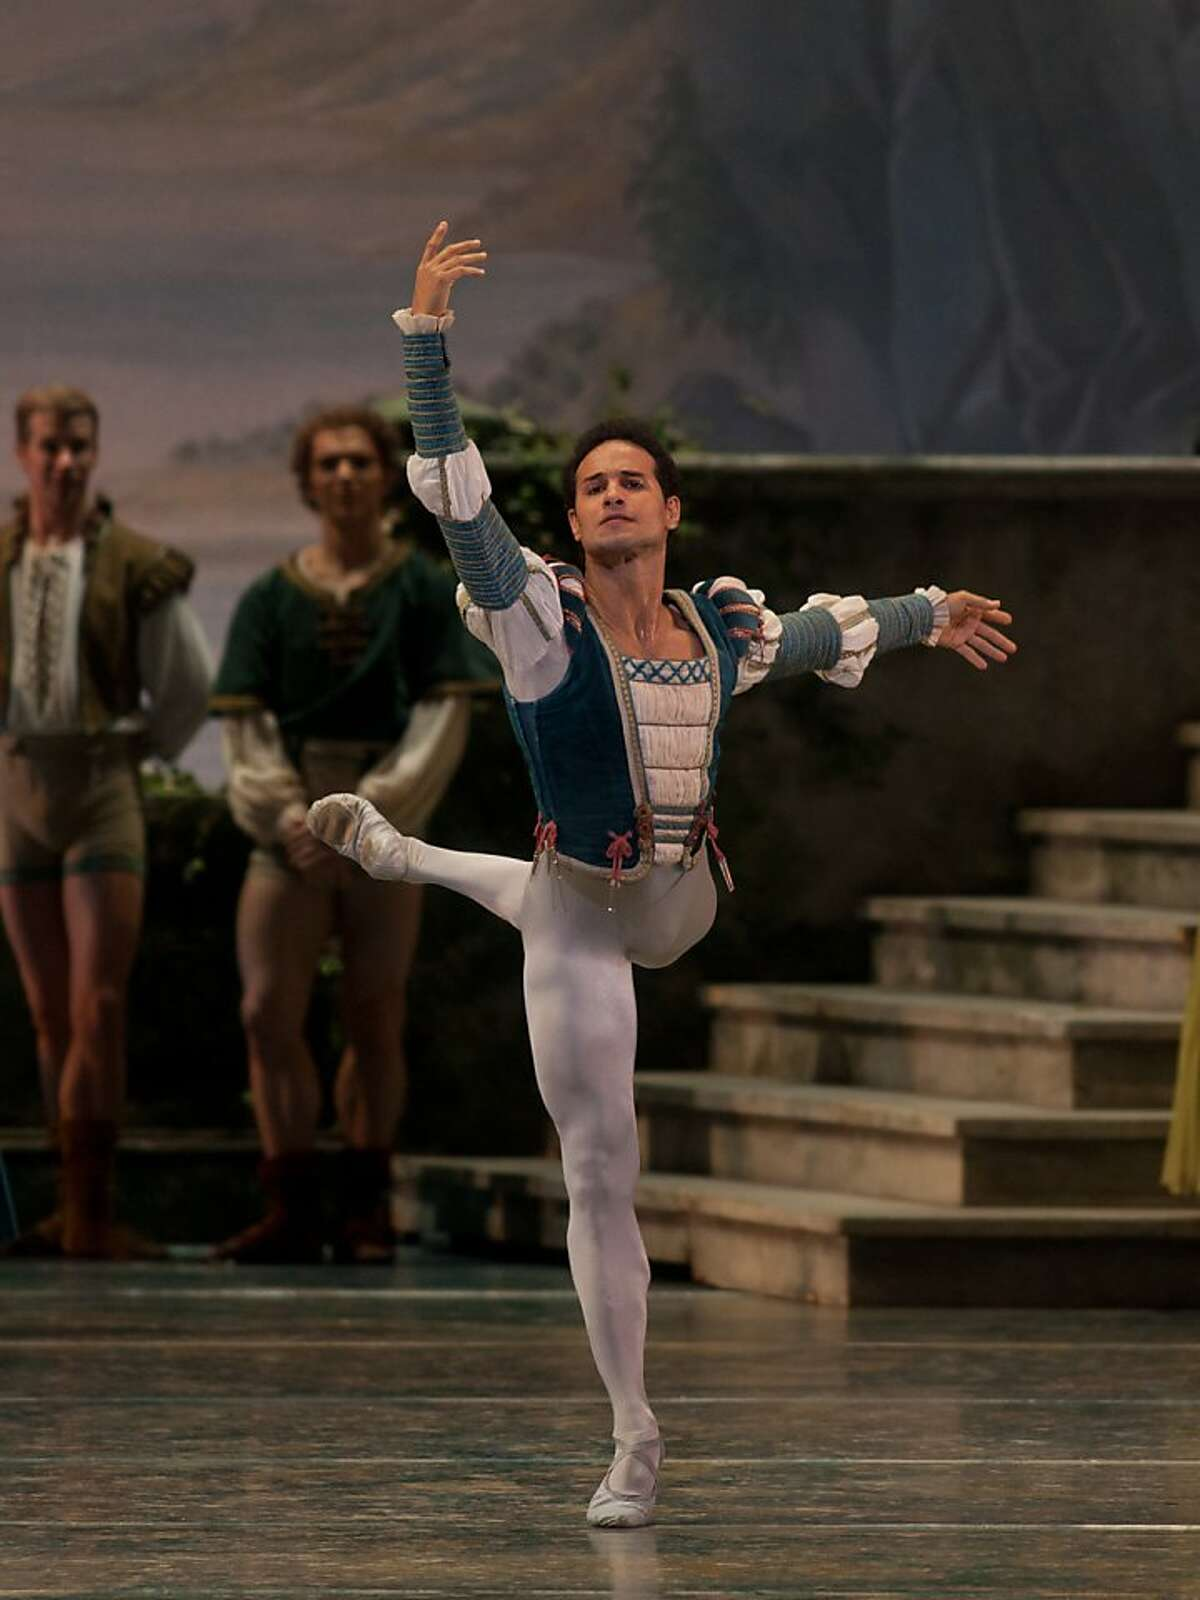 Ballet San Jose s new Artistic Director Jos Manuel Carre o as Prince Siegfried in Swan Lake, Act I. Photo: Rosalie O'Connor